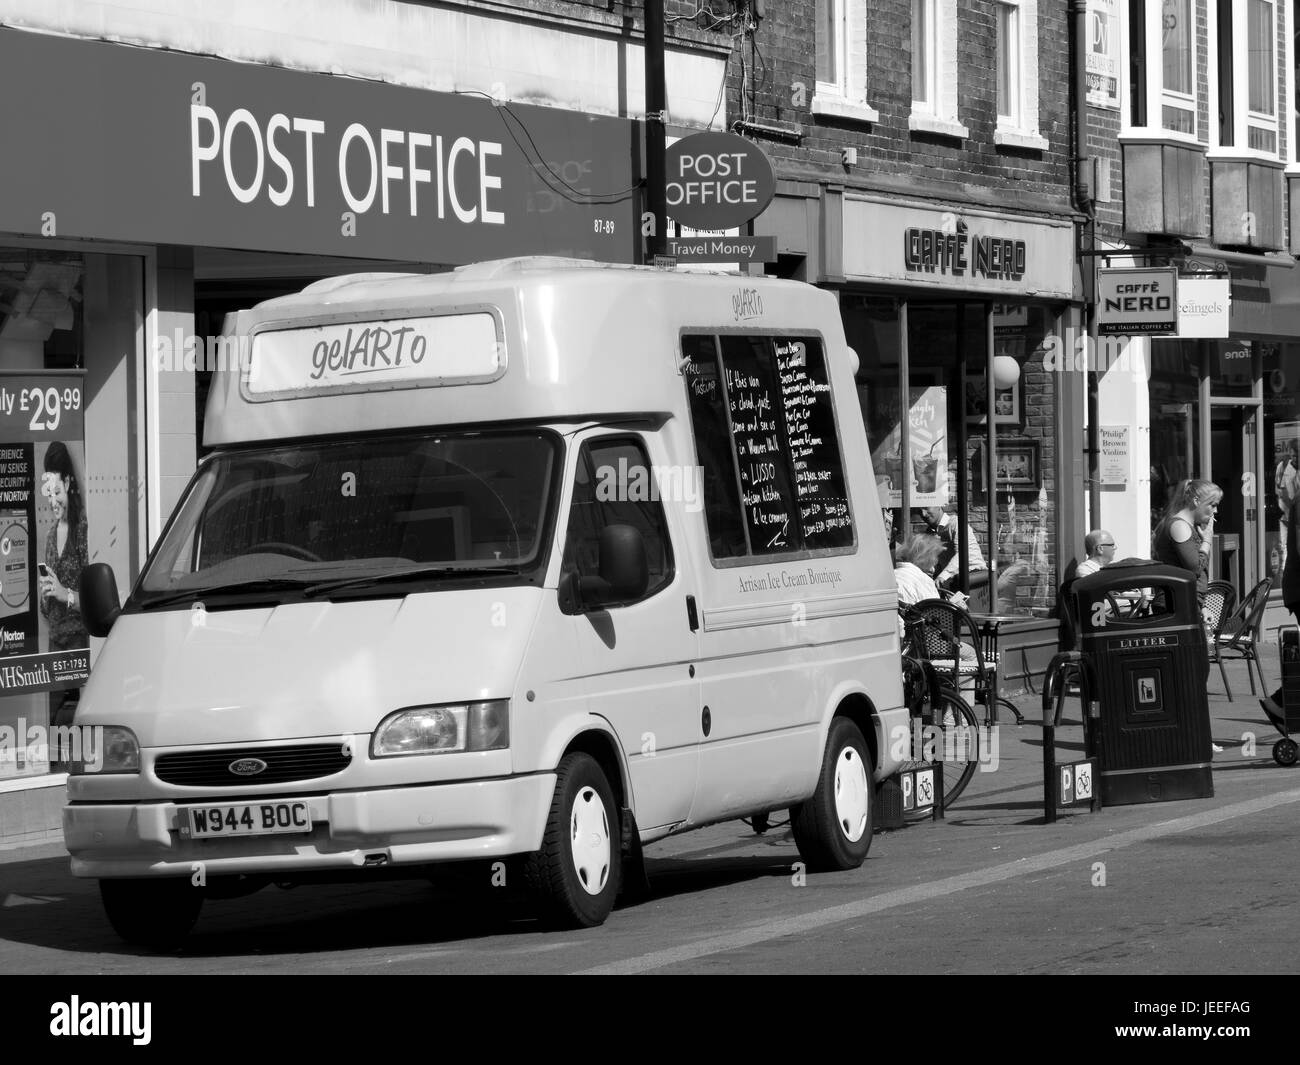 Gelarto Artisan Ice Cream Boutique van parked outside W H Smith - Stock Image